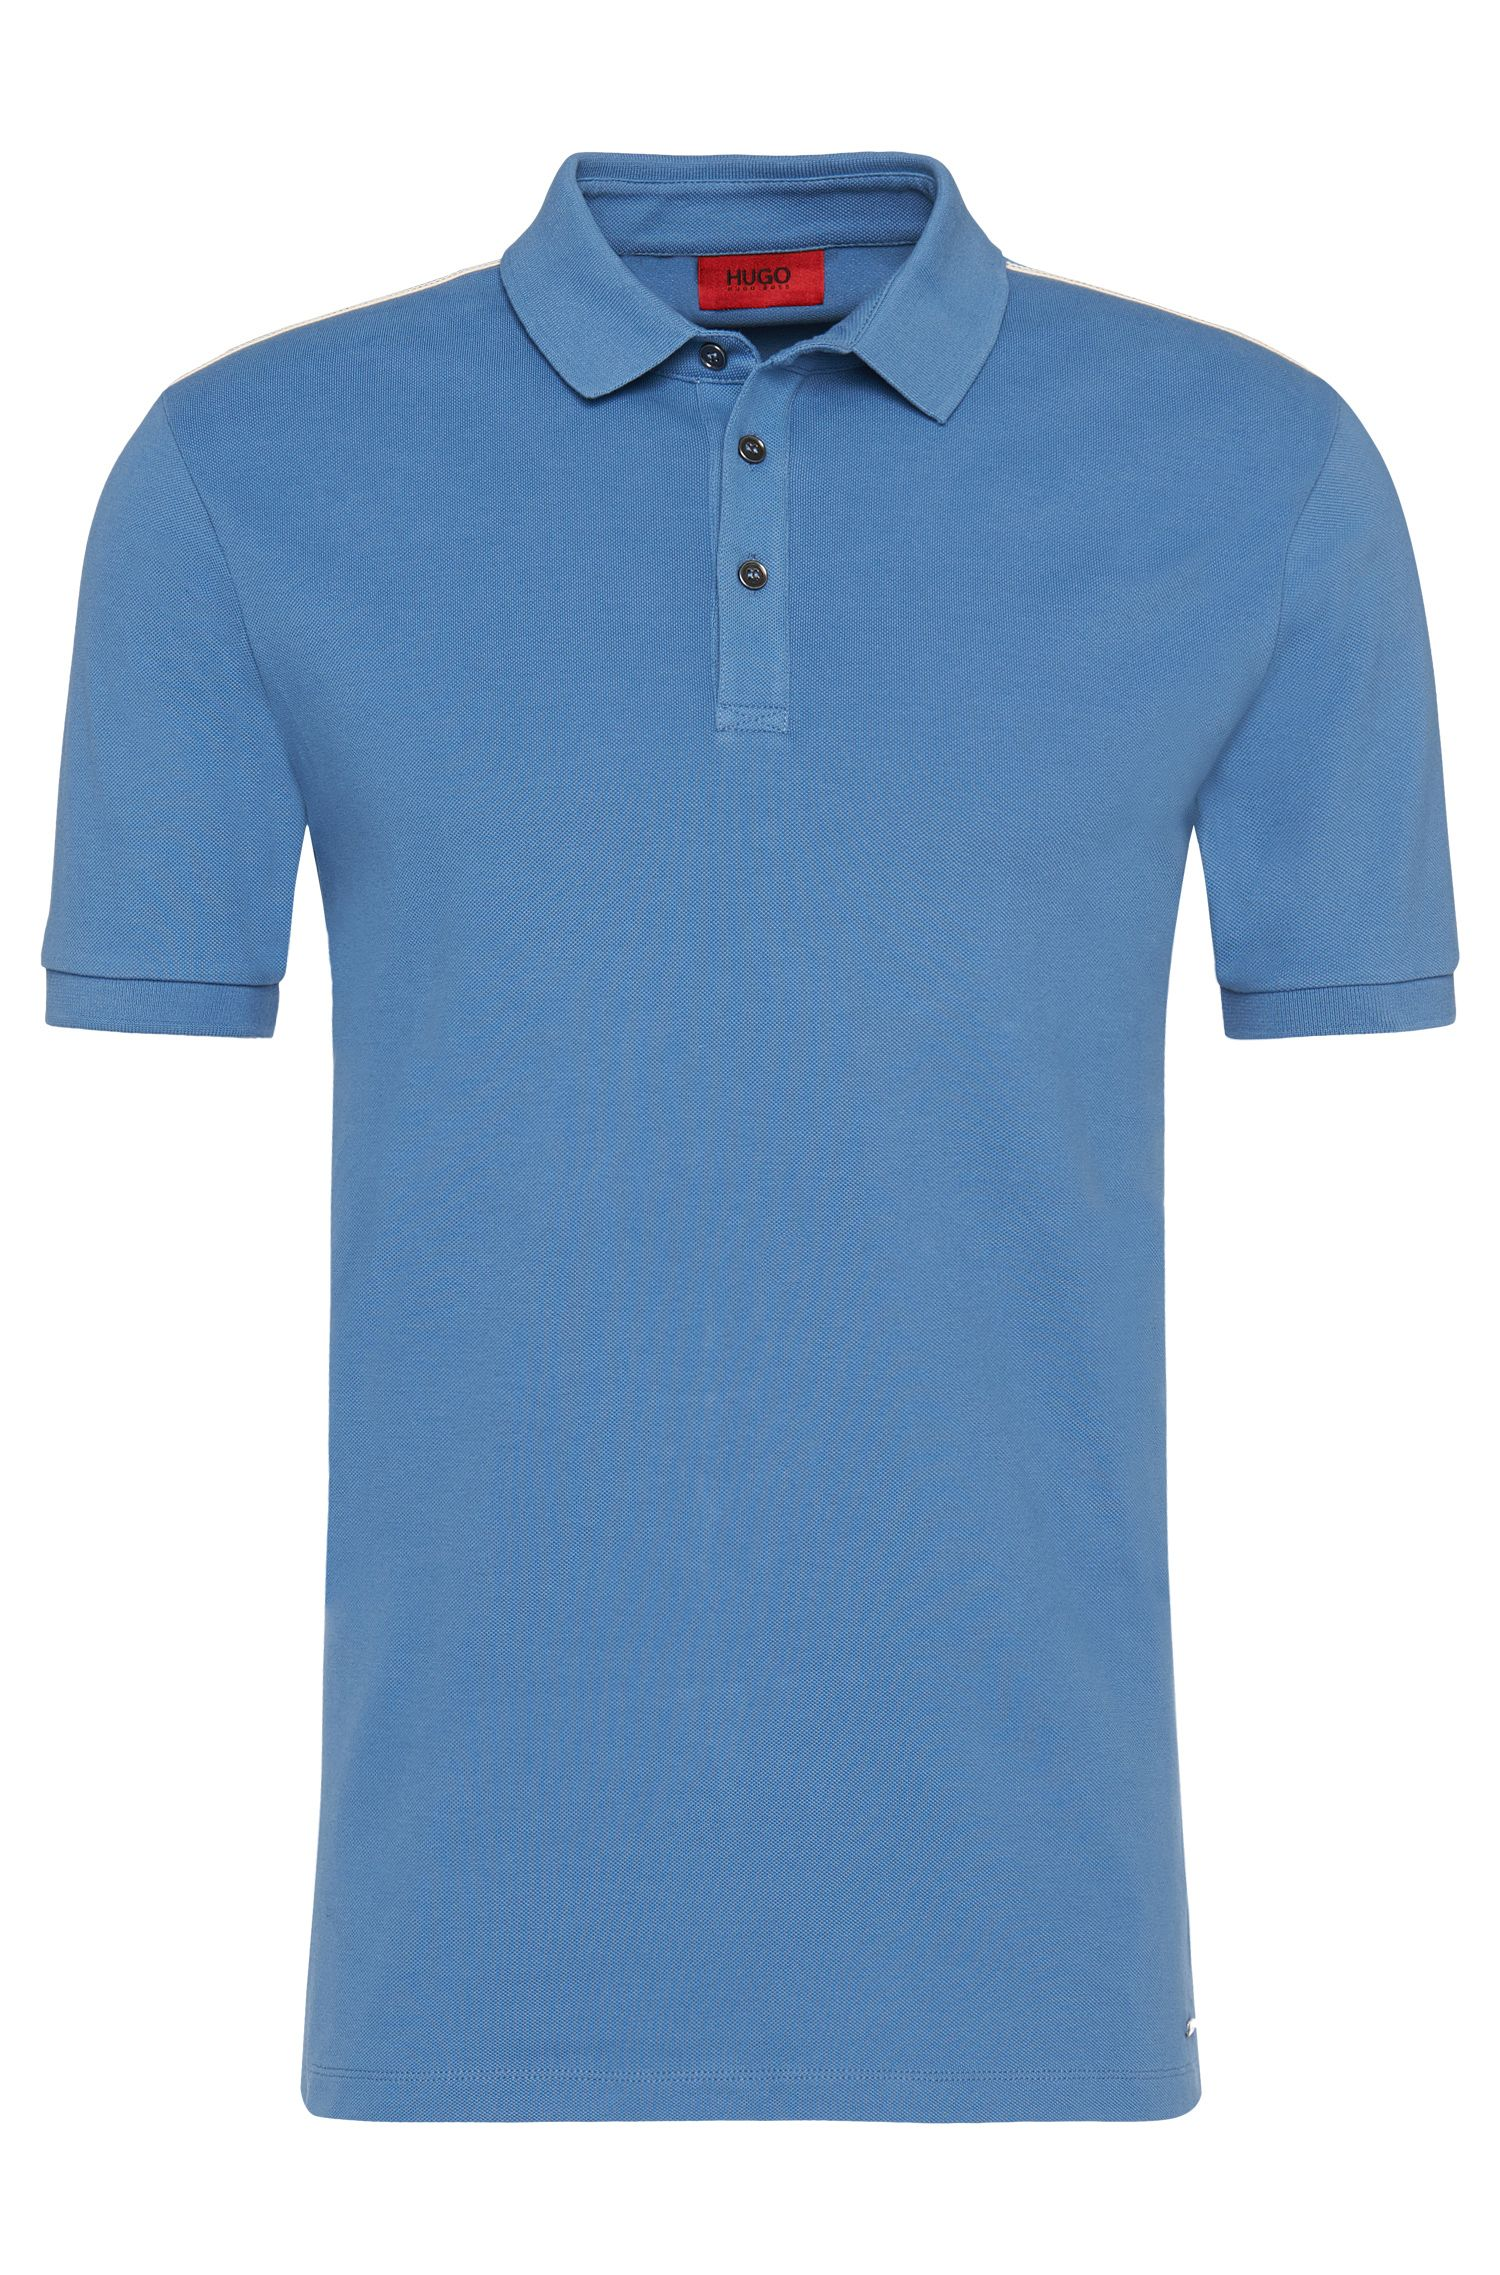 Regular-Fit Poloshirt aus Stretch-Baumwolle: 'Dasti'